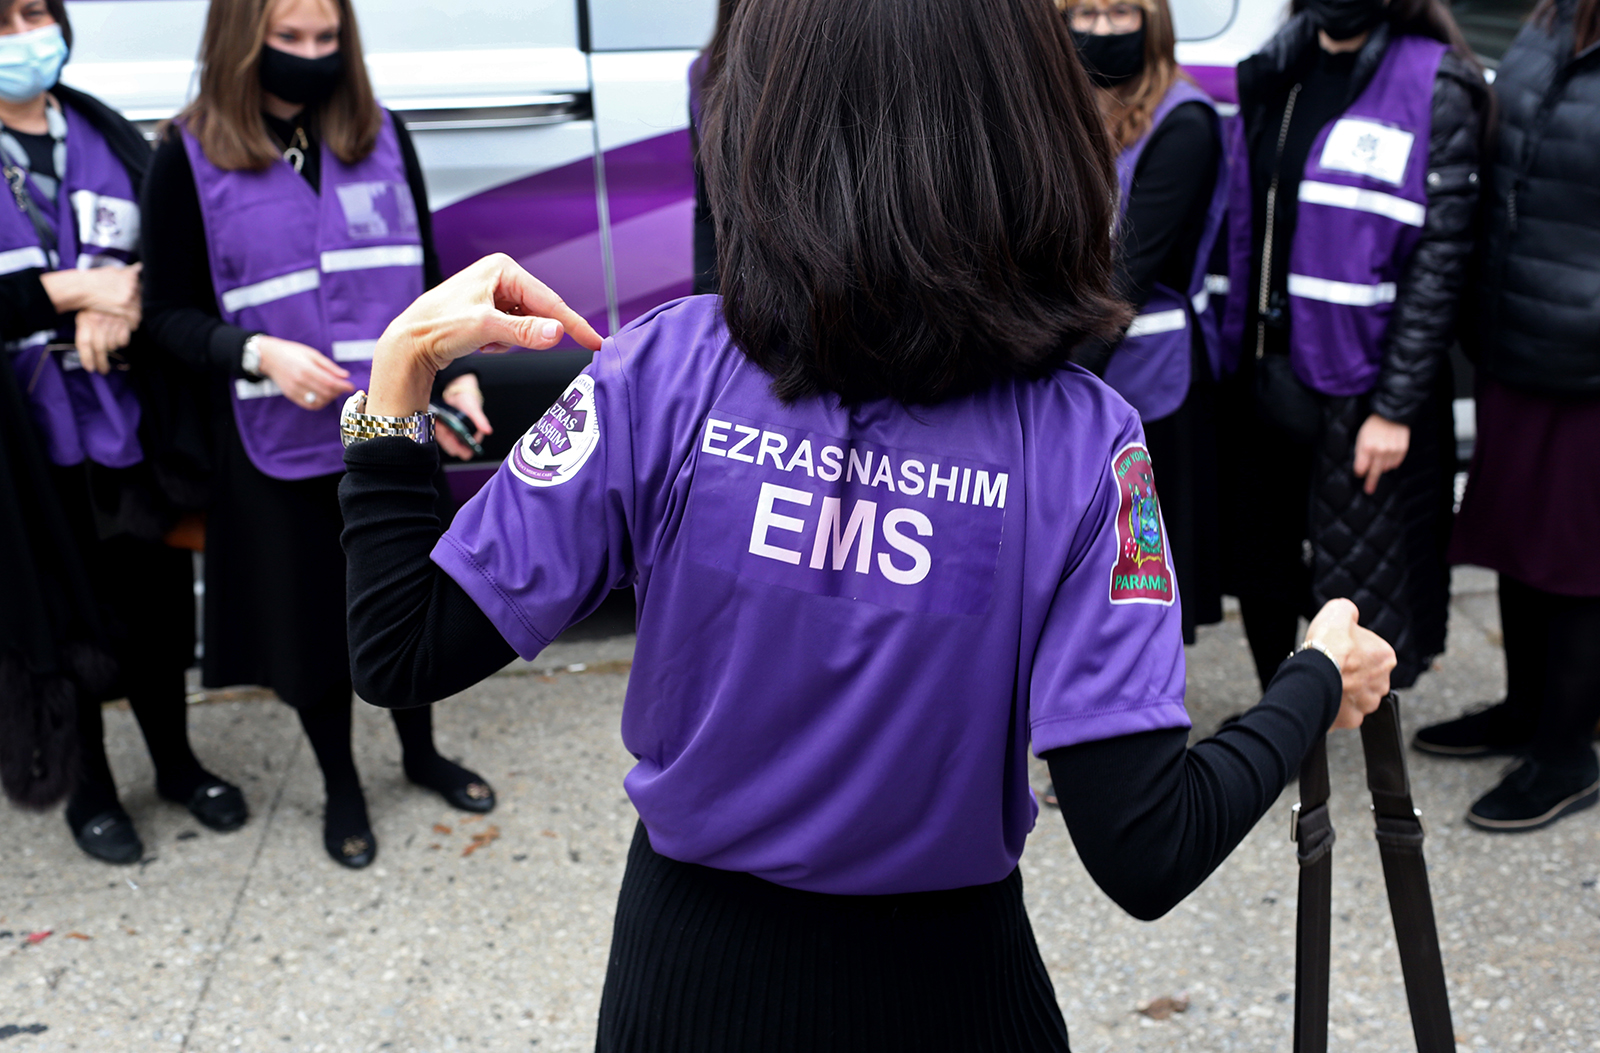 Rachel Freier (center,) founder of Ezras Nashim and a NYC Criminal Court Judge, joins other women by Gravesend Park in Brooklyn, New York to welcome their first ambulance on October 25, 2020. Ezras Nashim is the first all-female volunteer EMT corps aimed at servicing Orthodox Jewish communities of women. (Photo by: Yana Paskova for The New York Times/the National Geographic Society)